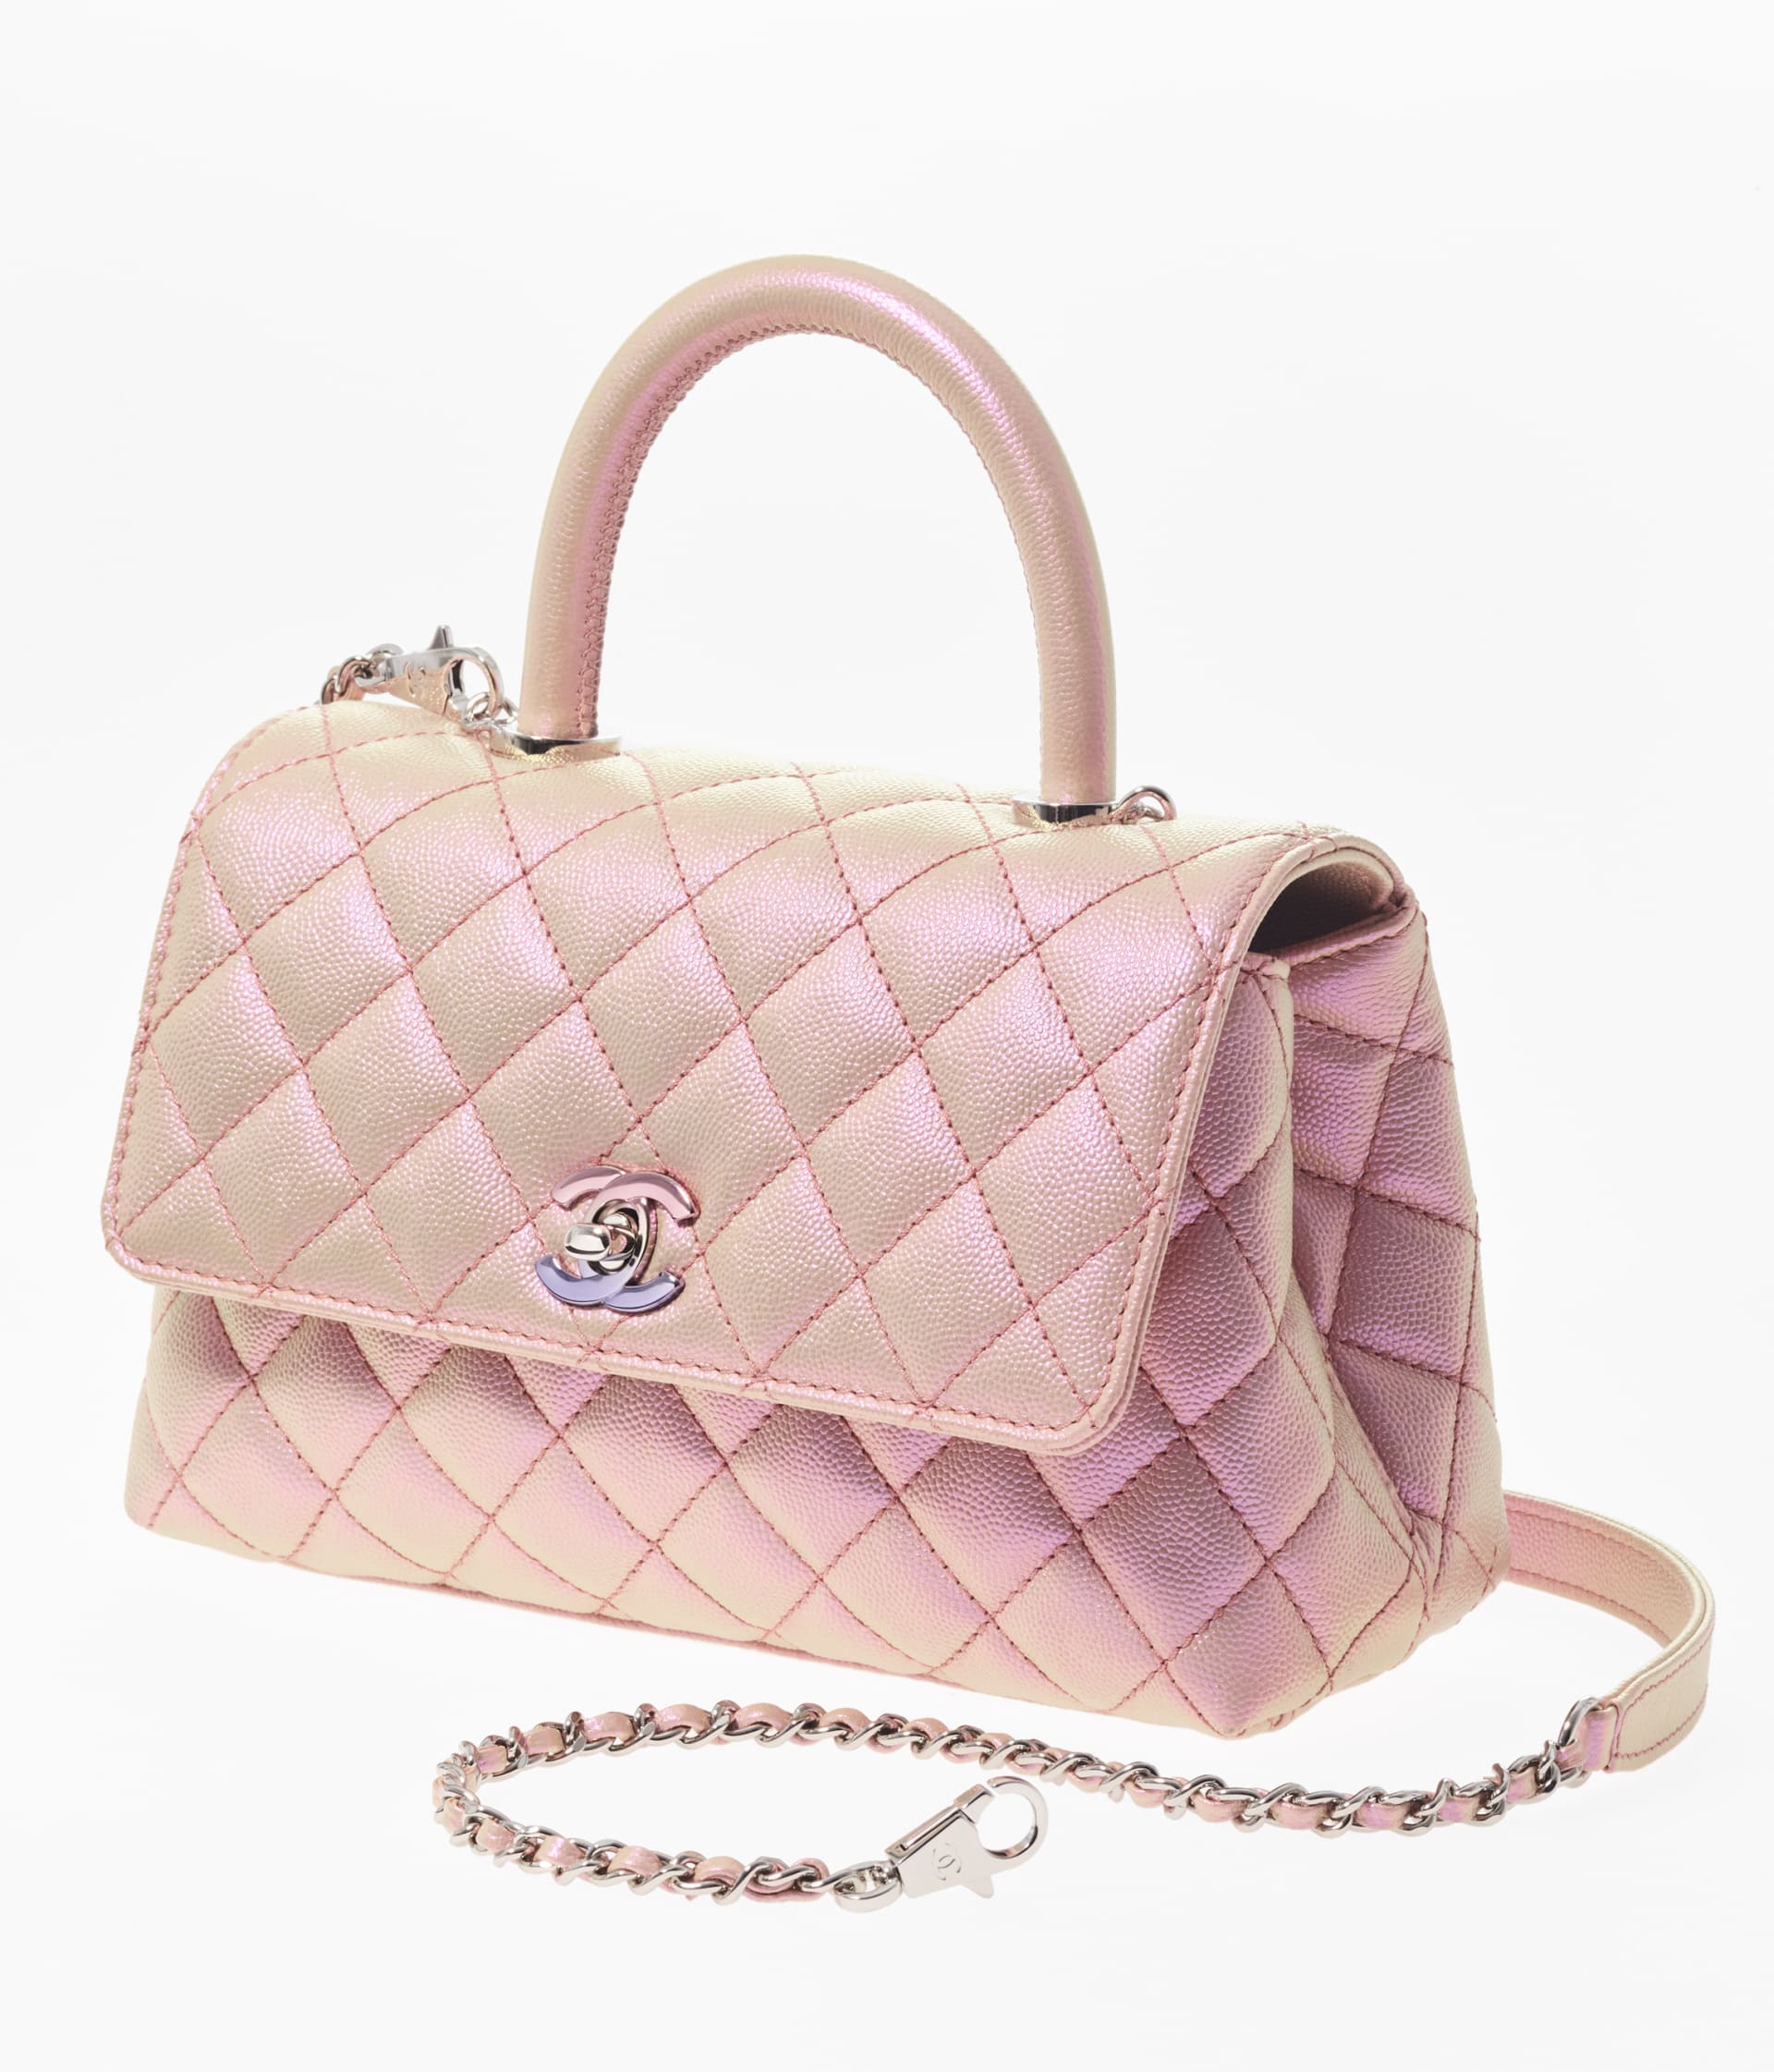 image 2 - Flap Bag with Top Handle - Iridescent Grained Calfskin & Gradient Lacquered Metal - Light Pink